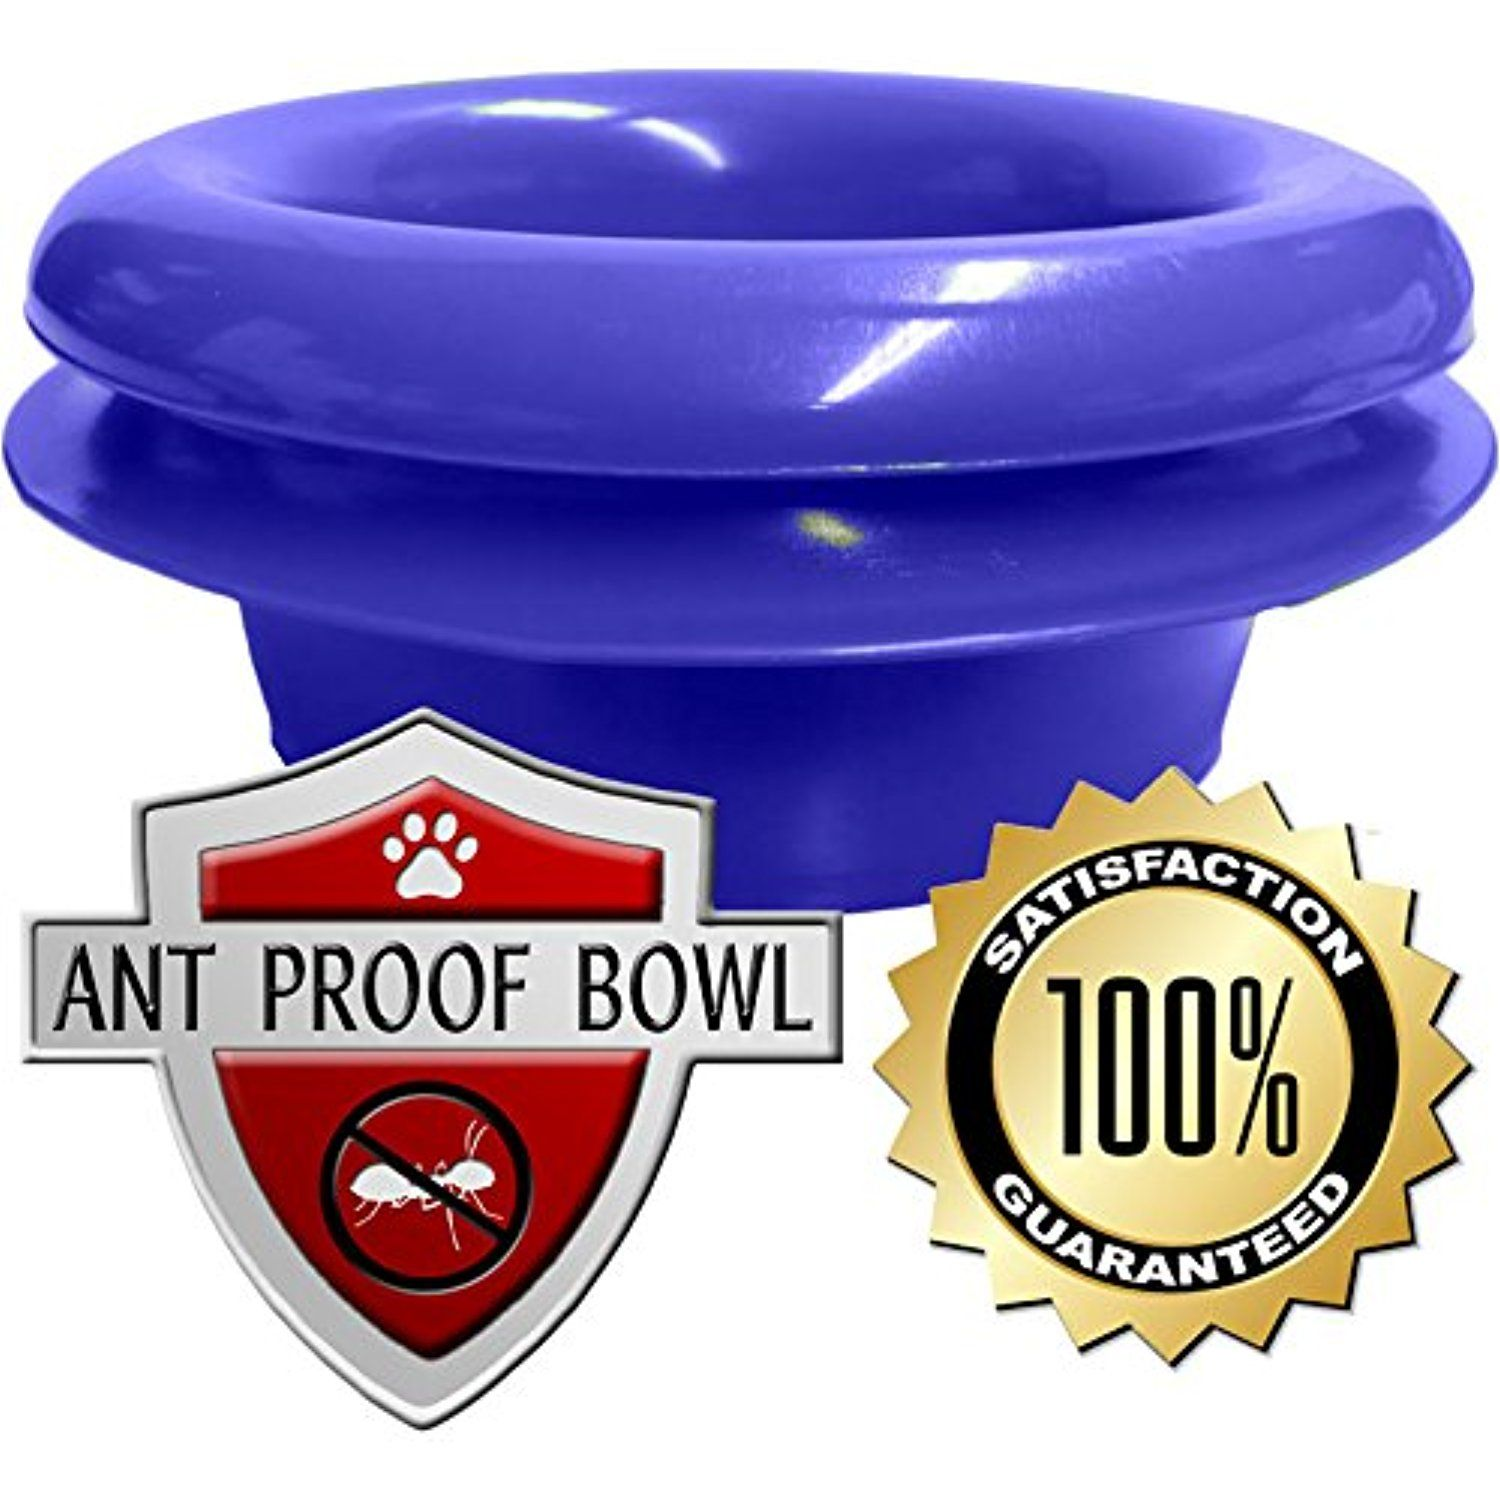 Ant Proof Bowl (Blue) You can find out more about the